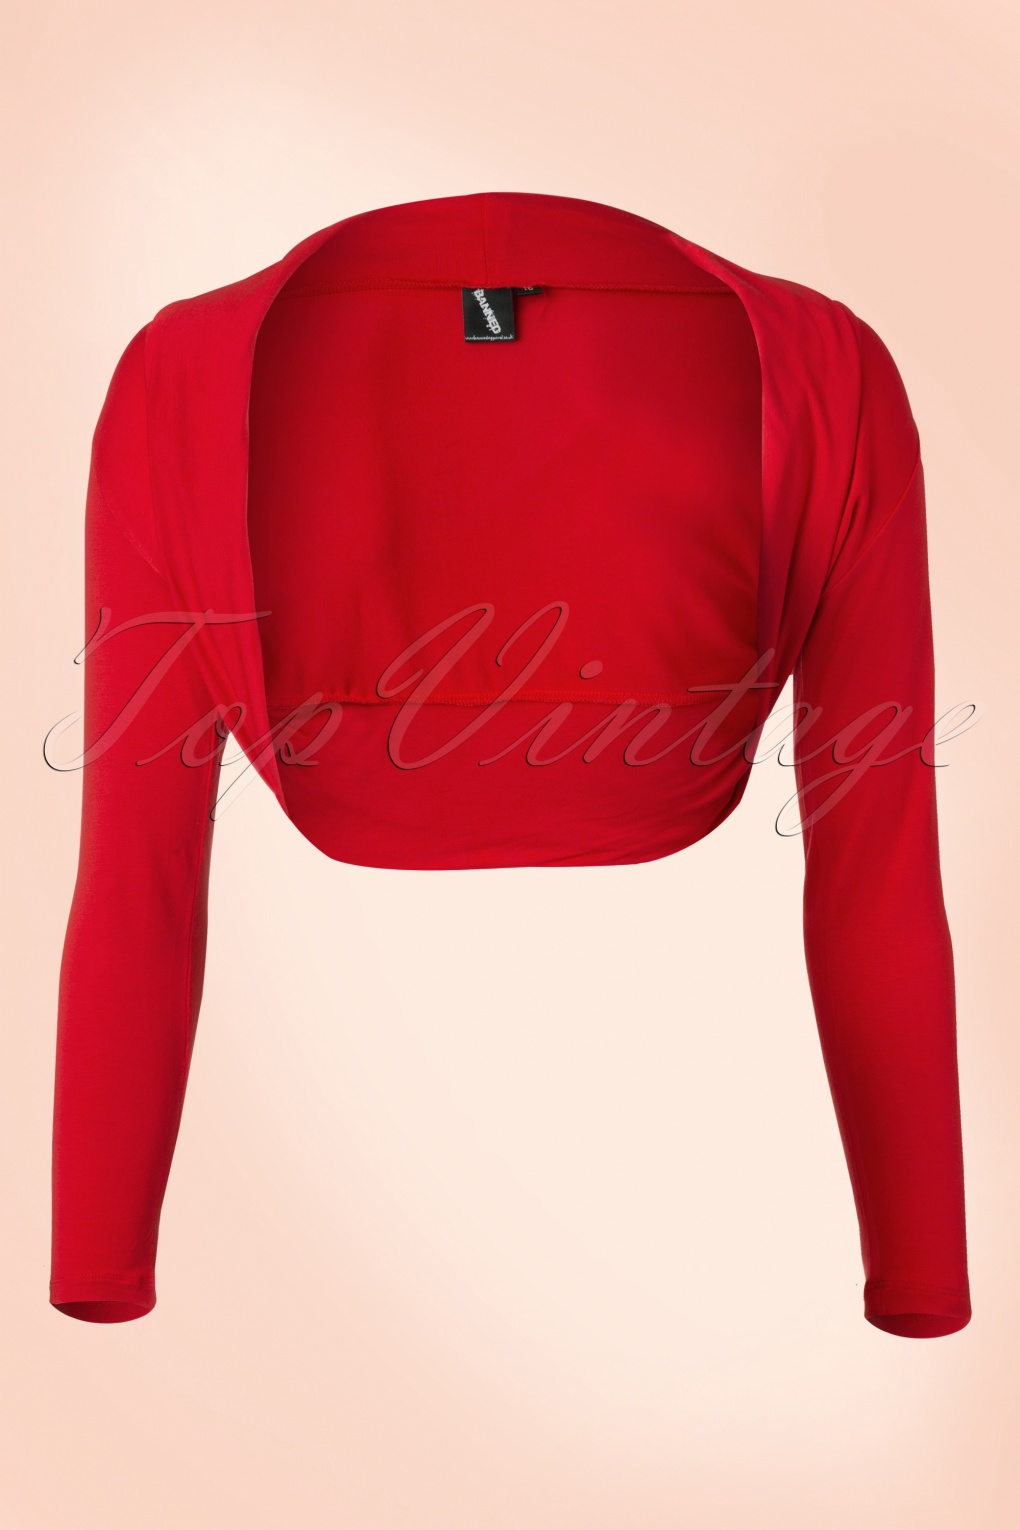 1950s Style Sweaters, Crop Cardigans, Twin Sets Lady Folded Bolero in Vintage Red £20.88 AT vintagedancer.com